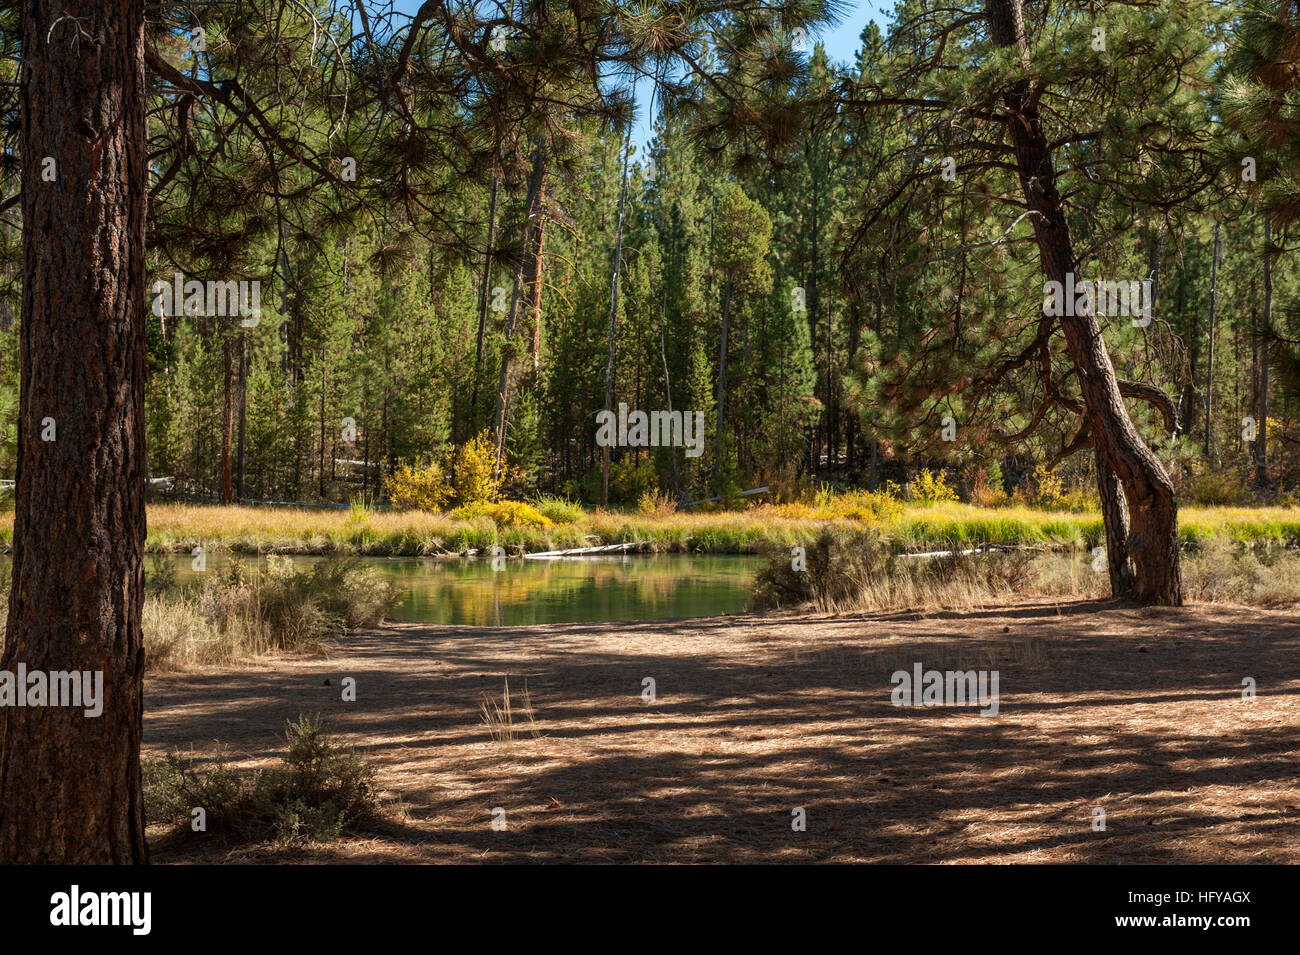 The view at one of the camp sites in Bull Bend Campground (USFS) near LaPine, Oregon.  The river is the Deschutes. - Stock Image